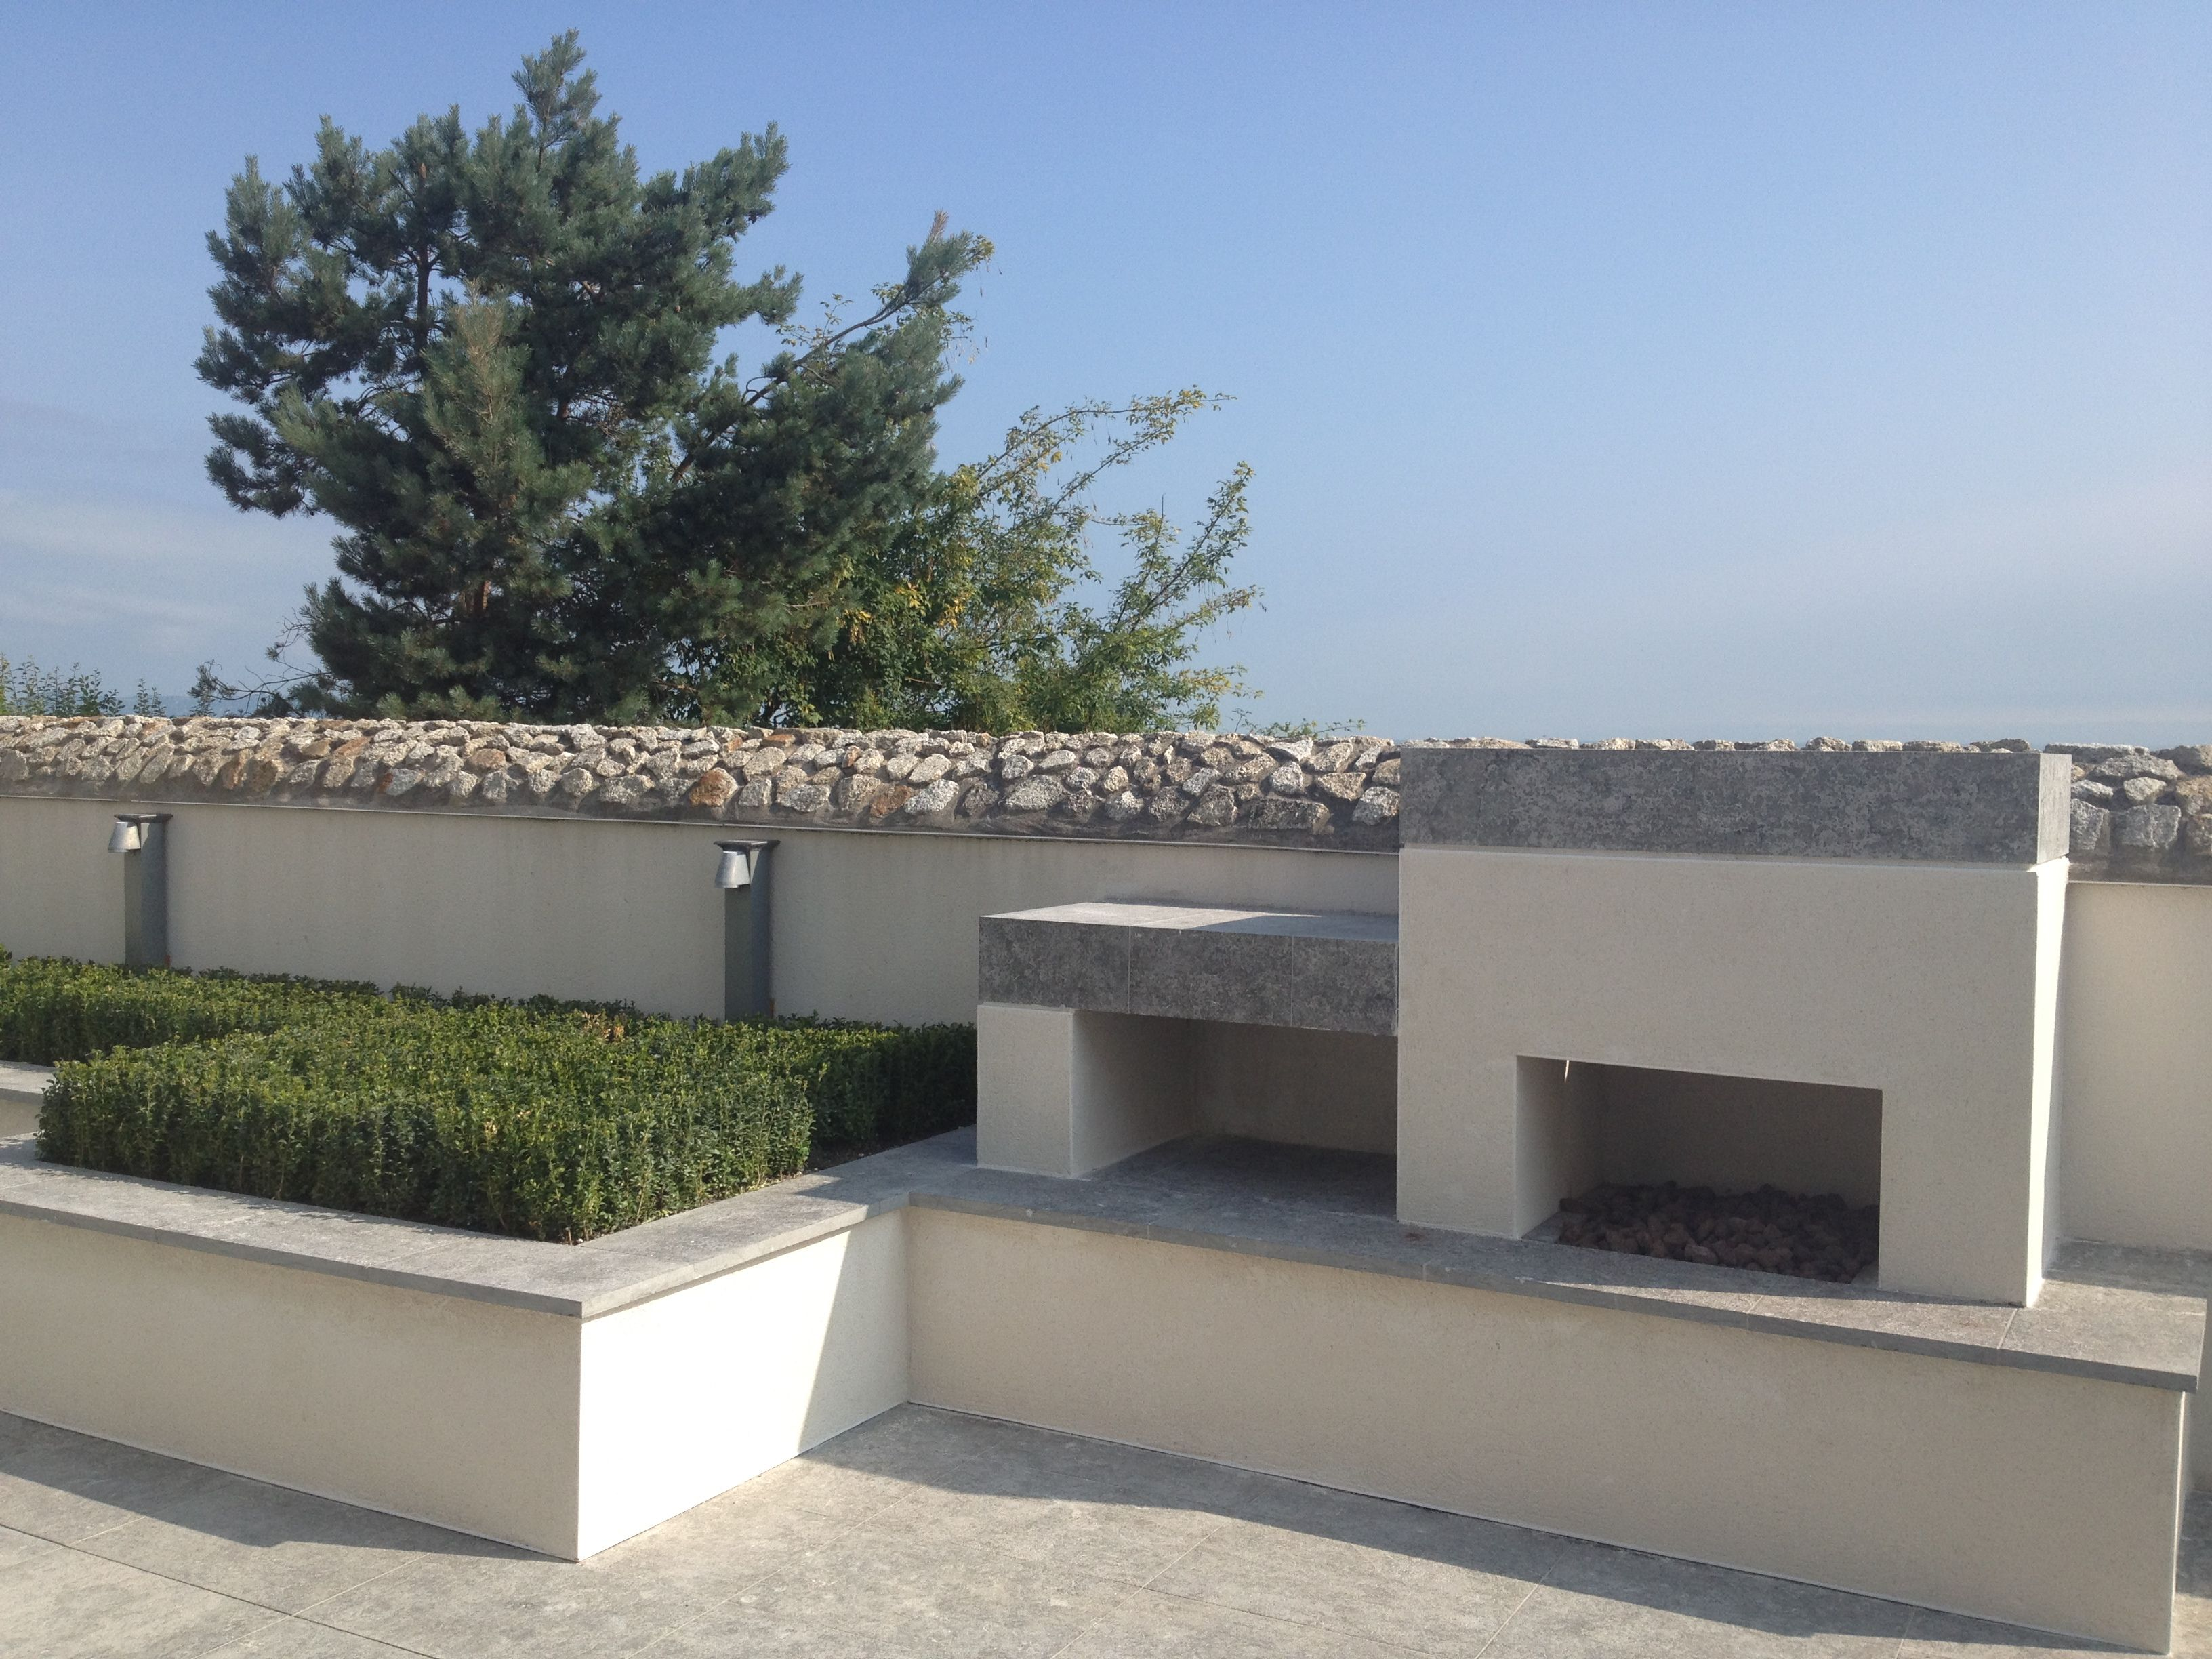 buxus pad rendered raised bed and outdoor fireplace with